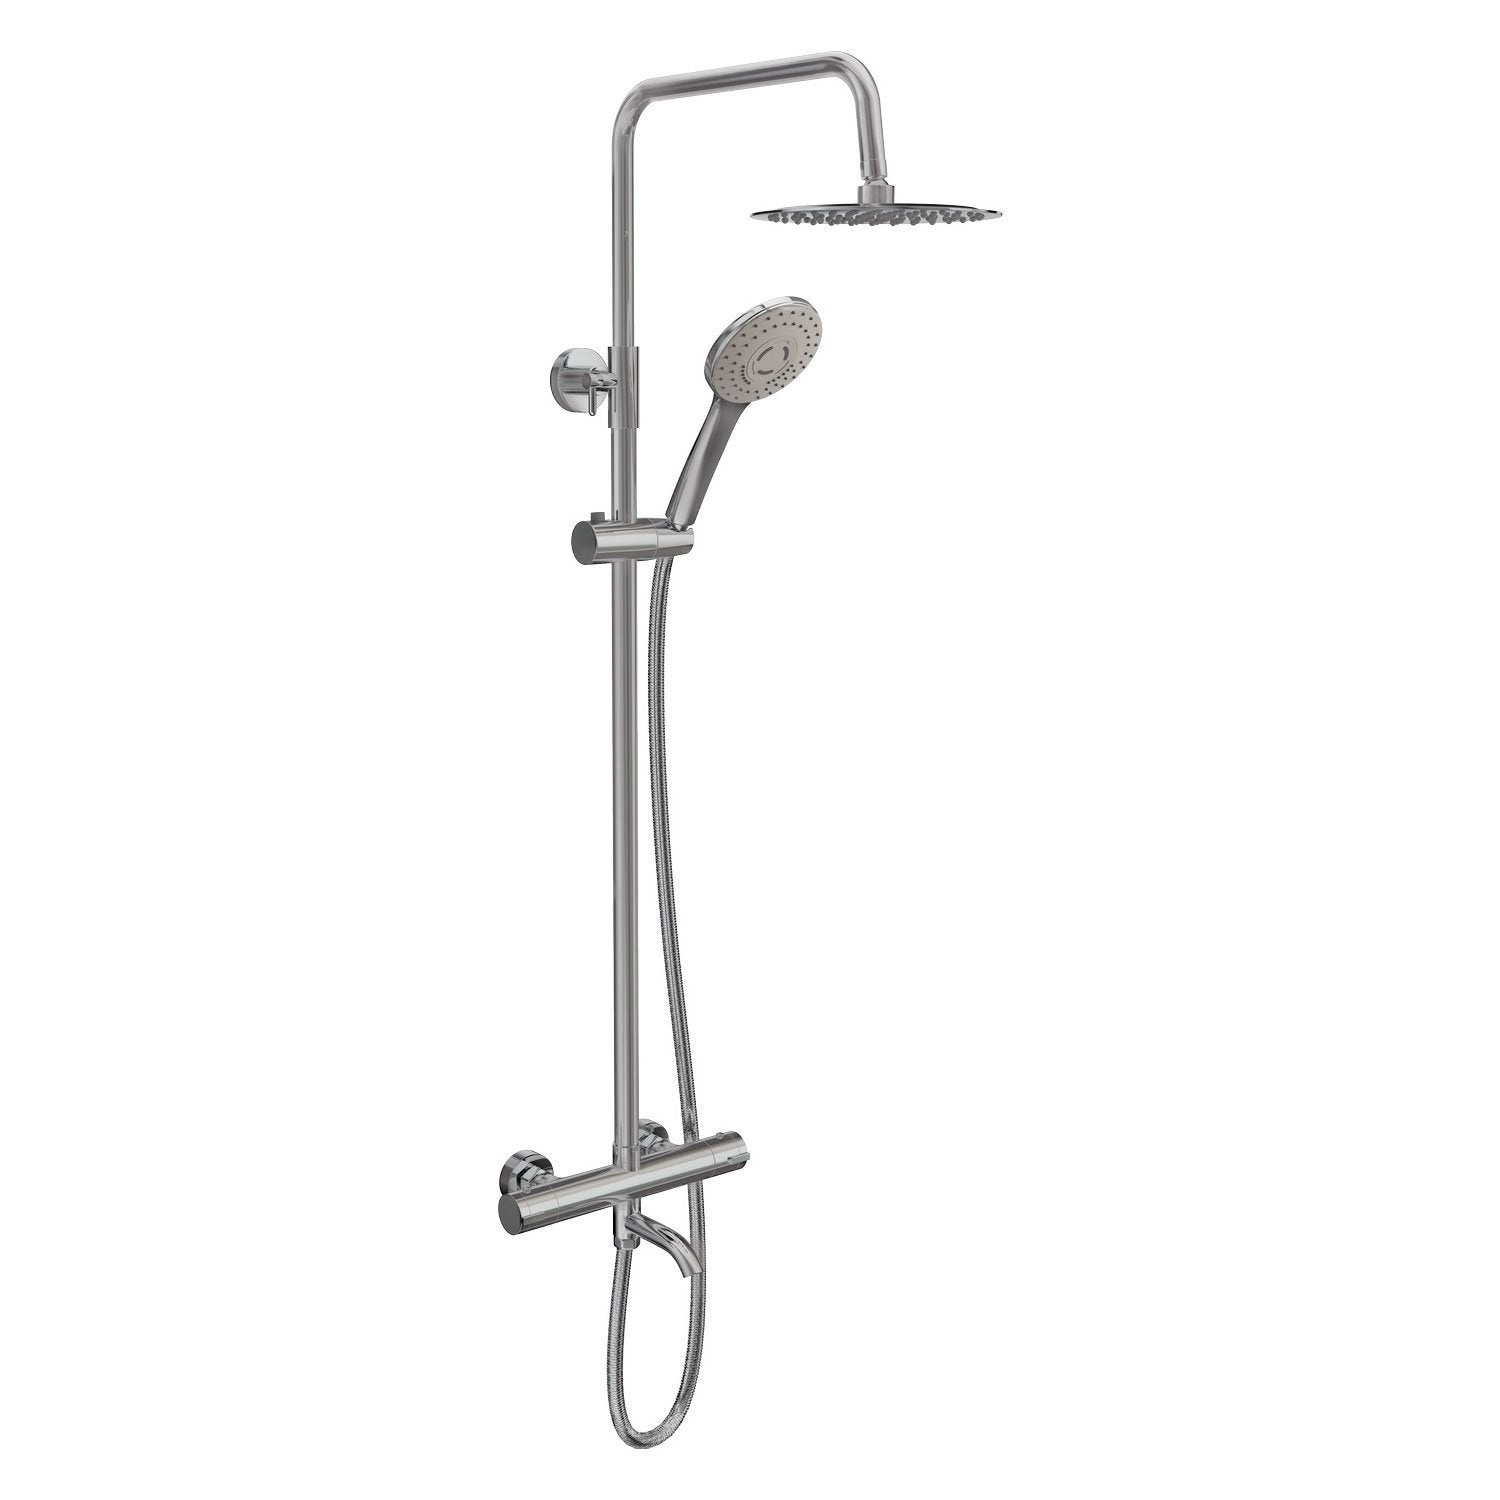 Cassellie Santana Thermostatic Bar Shower Valve with Shower Kit and Bath Filler + Fixed Head